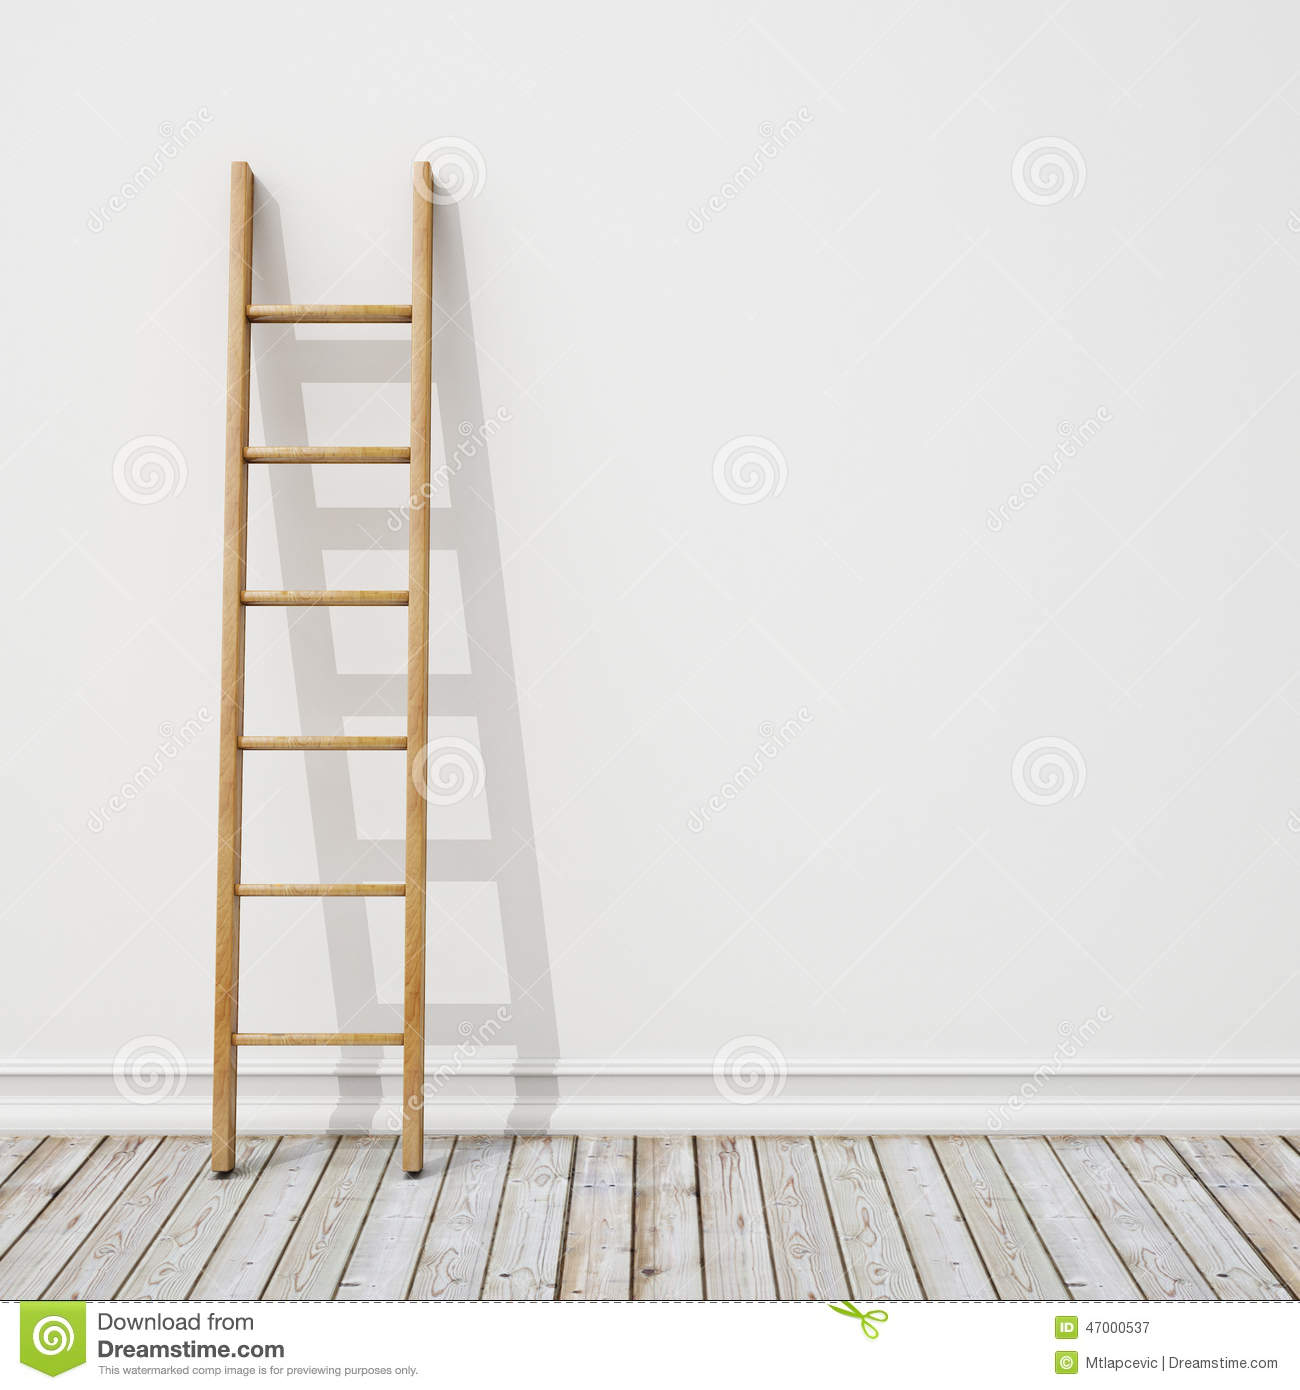 ladder on wall - photo #35